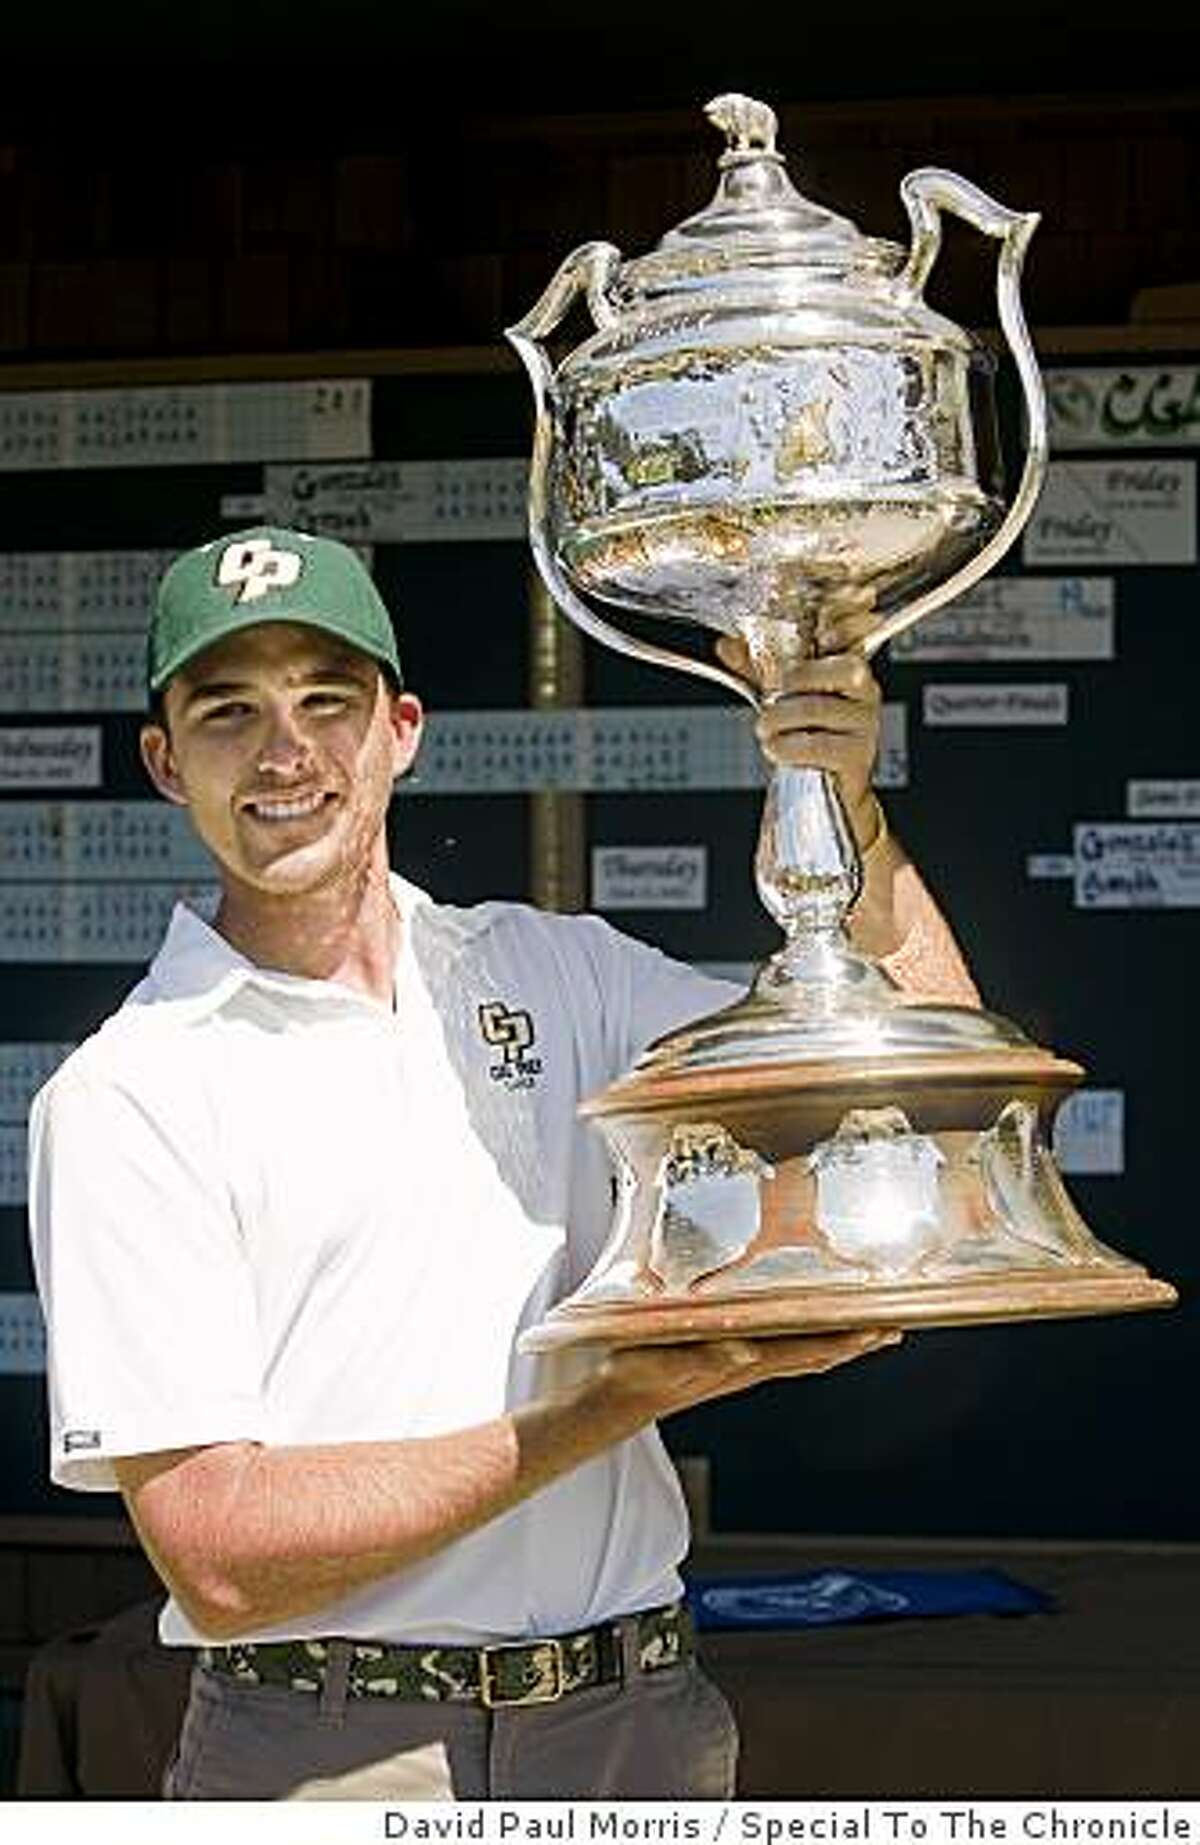 Geoff Gonzalez of Diablo holds up the trophy after beating Jeff Wilson of Fairfield 3 and 2 during the final 36 hole match of the California State Amateur Championship at Lake Merced Golf and Country Club on June 27, 2009 in Daly City, Calif.